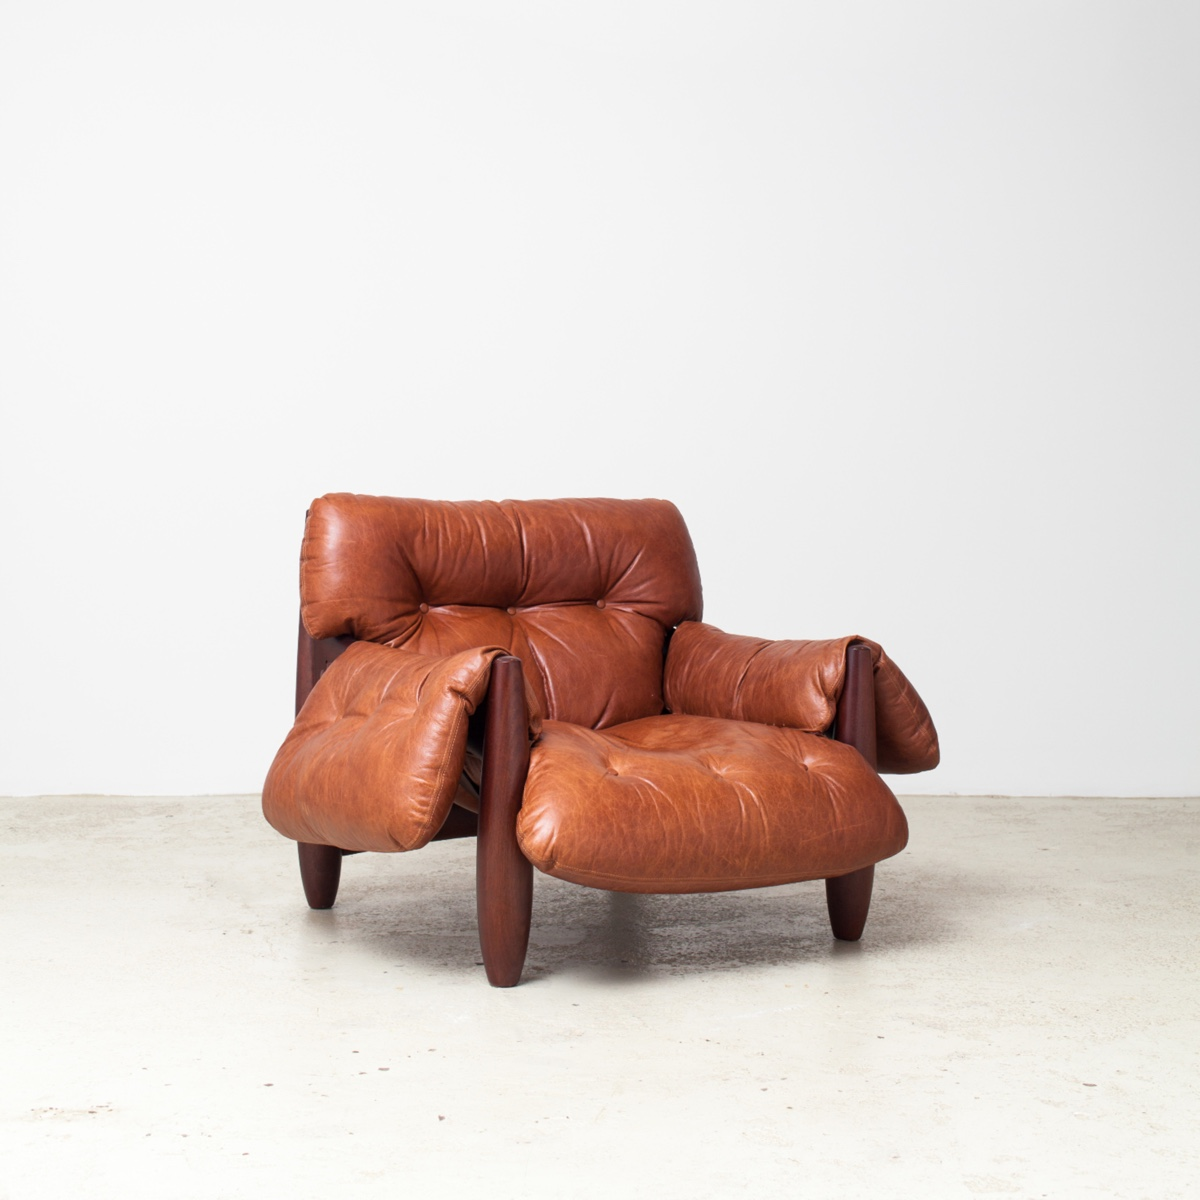 The 1961 Mole armchair by Sergio Rodrigues is considered his most iconic piece.